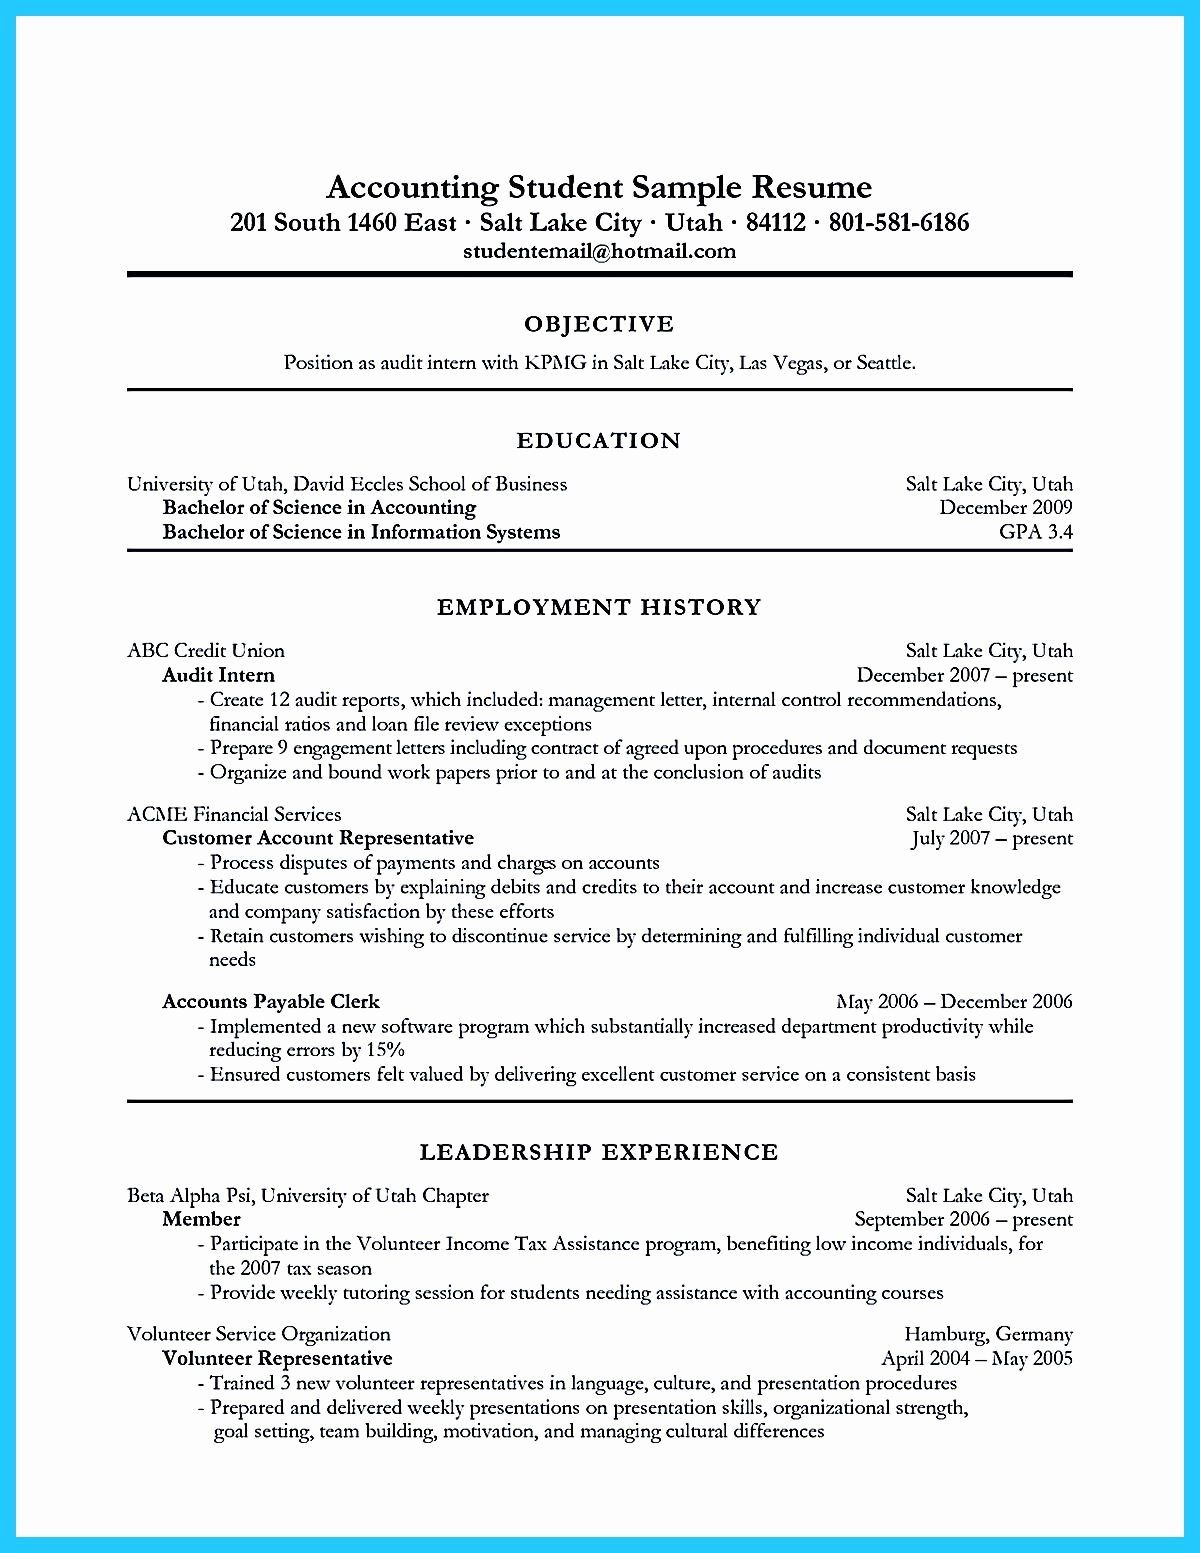 Resume For Accounting Internship With No Experience Printable Resume Template Internship Resume Resume Objective Job Resume Examples